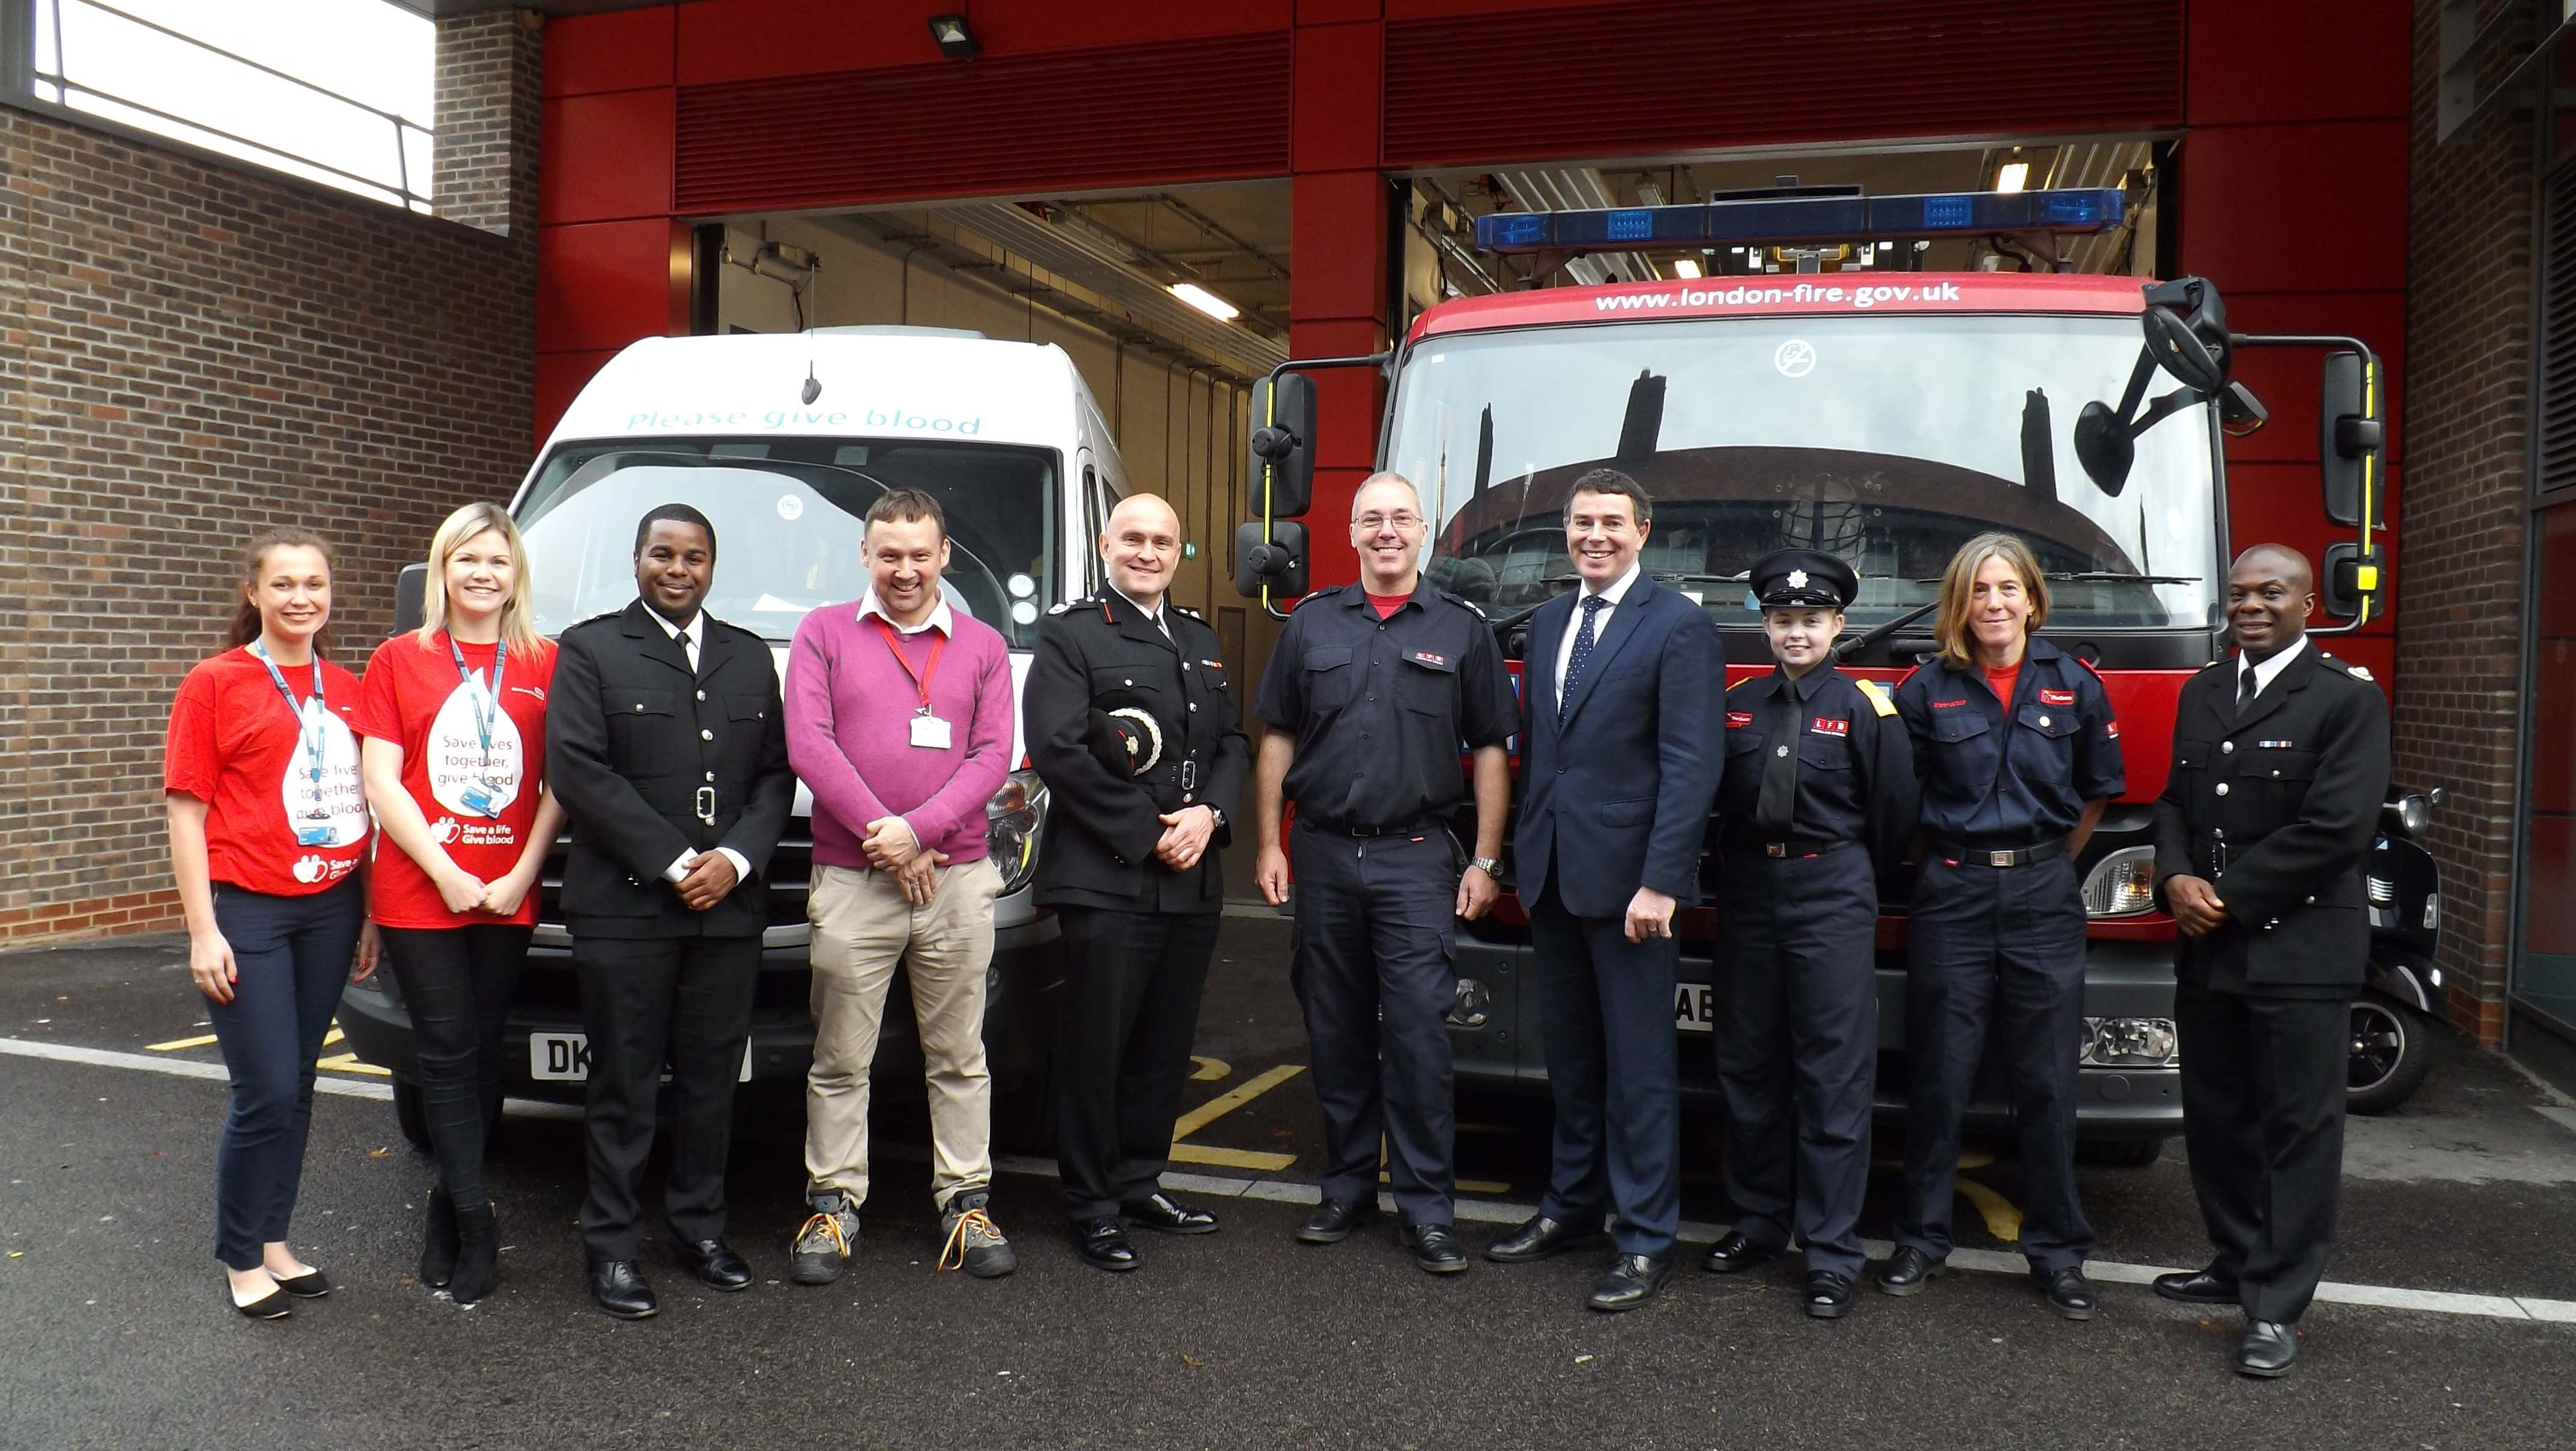 NHSBT Chief Executive Ian Trenholm and members of NHSBT's Venue Improvement Team with staff at Shadwell